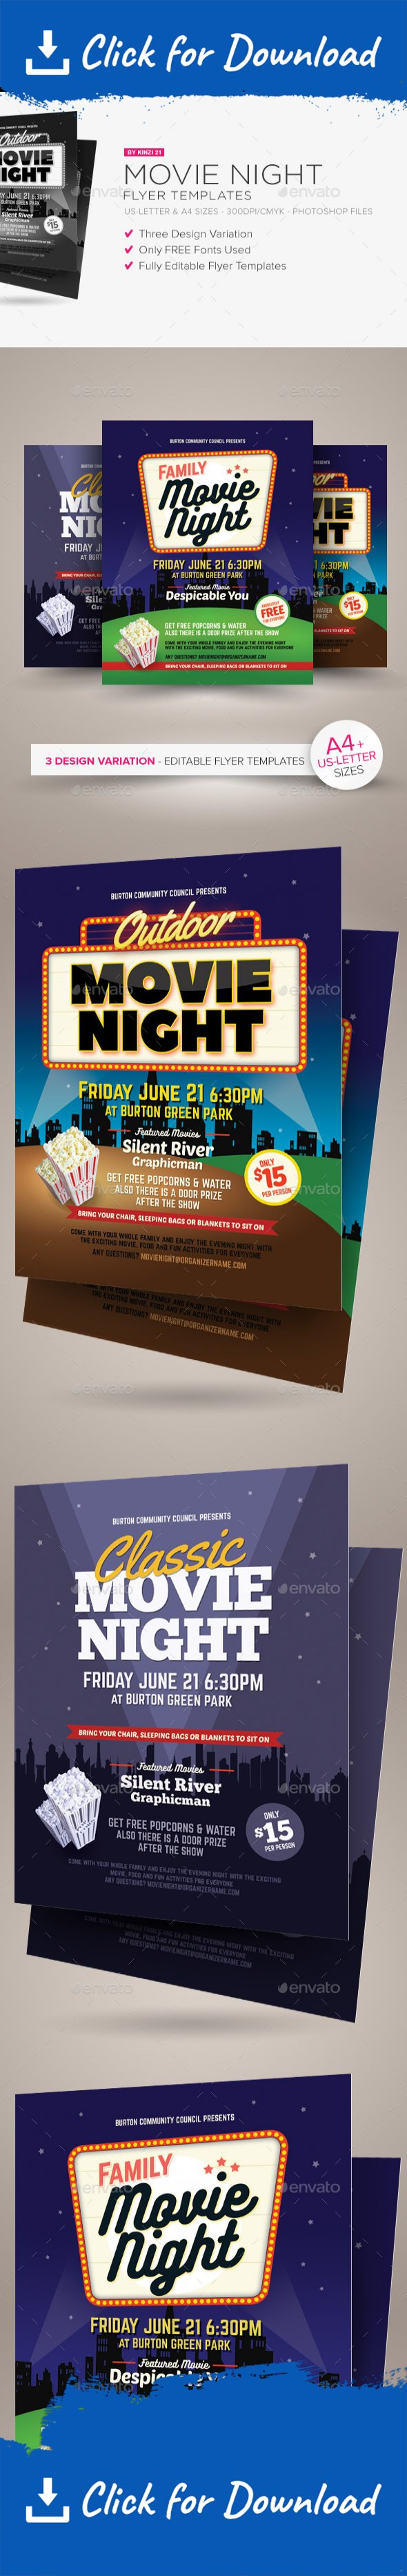 Movie Night Flyer Templates | Flyer template, Add remove and Template